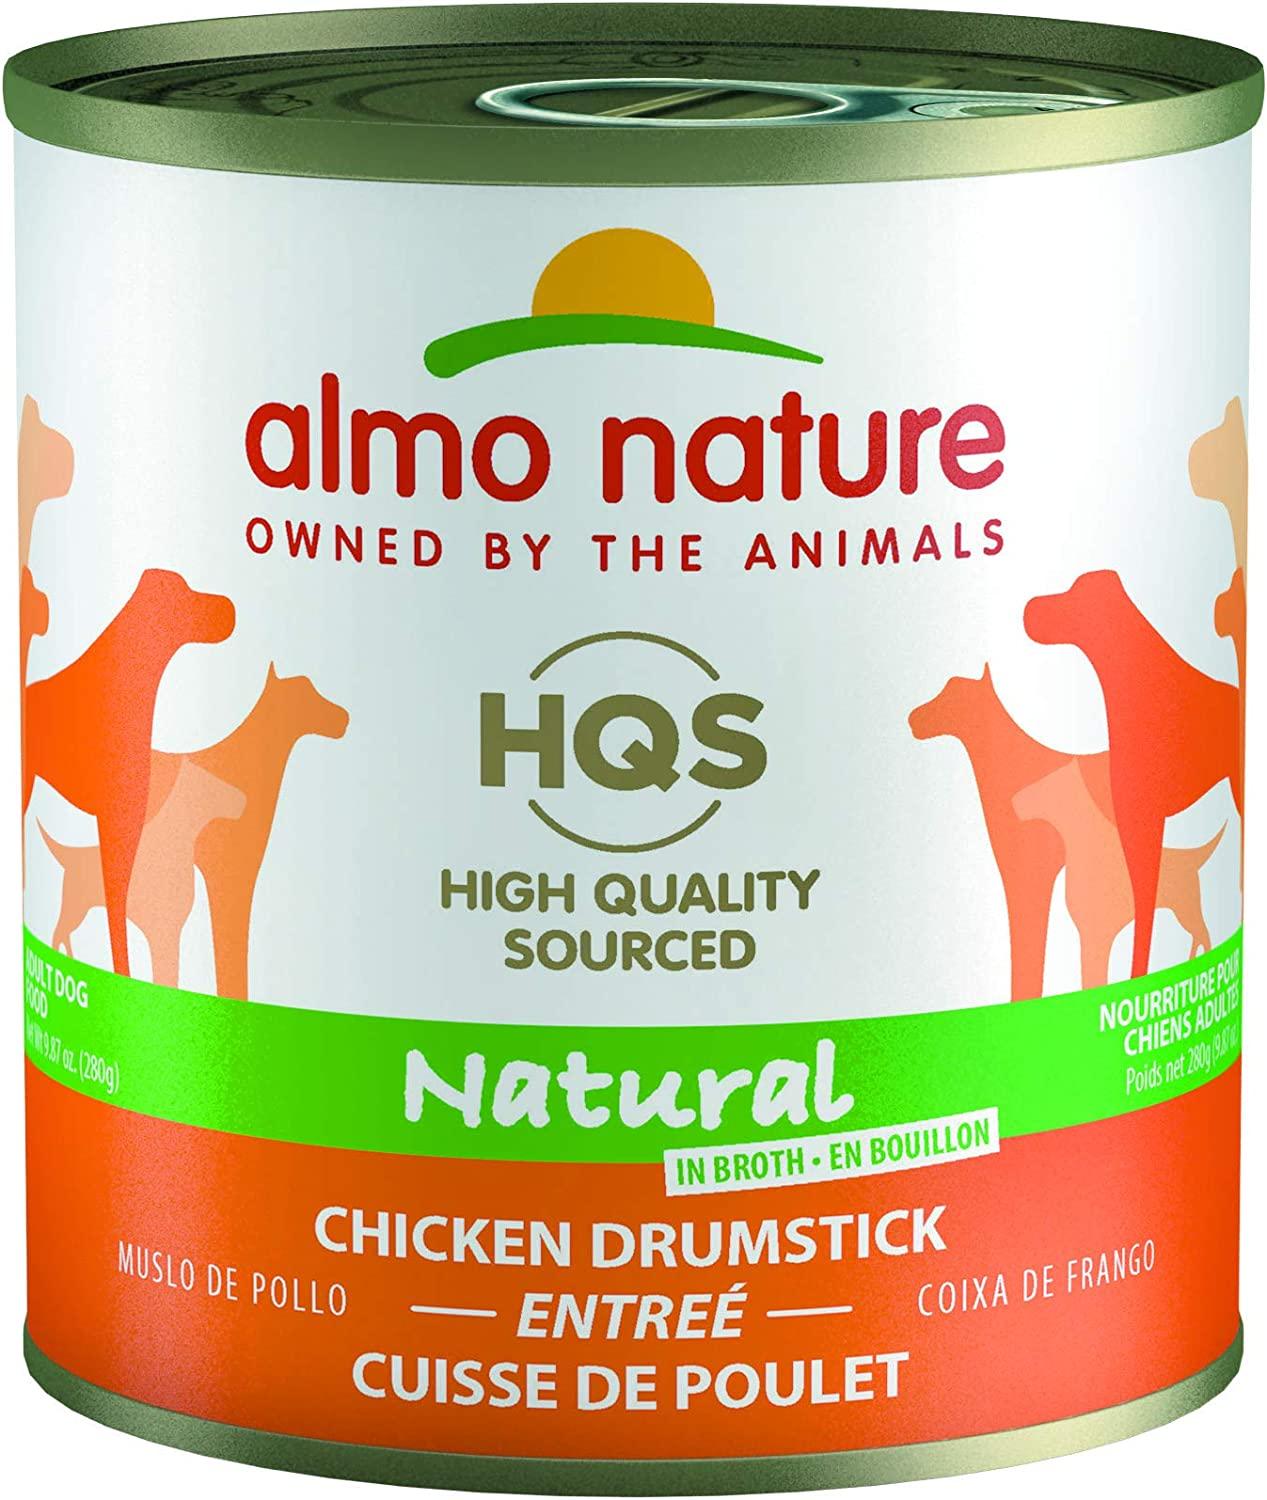 almo nature HQS Natural Chicken Drumstick, Additive Free, Gluten Free, Adult Dog Canned Wet Food, Shredded. (2201)